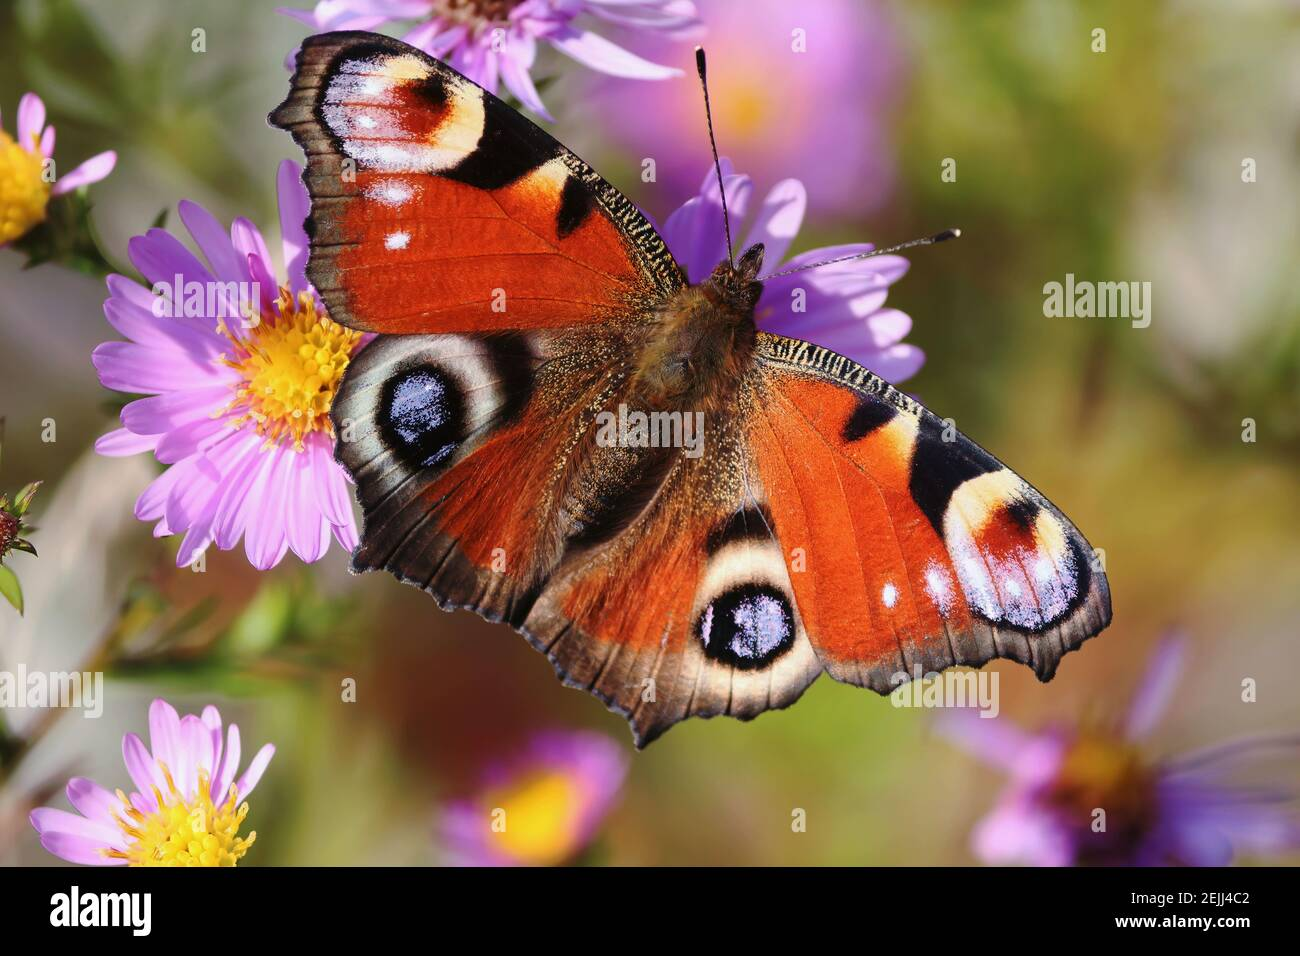 Aglais io or European Peacock Butterfly or Peacock. Butterfly on a flower. A brightly lit red-brown orange butterfly with blue lilac spots on wings. Stock Photo